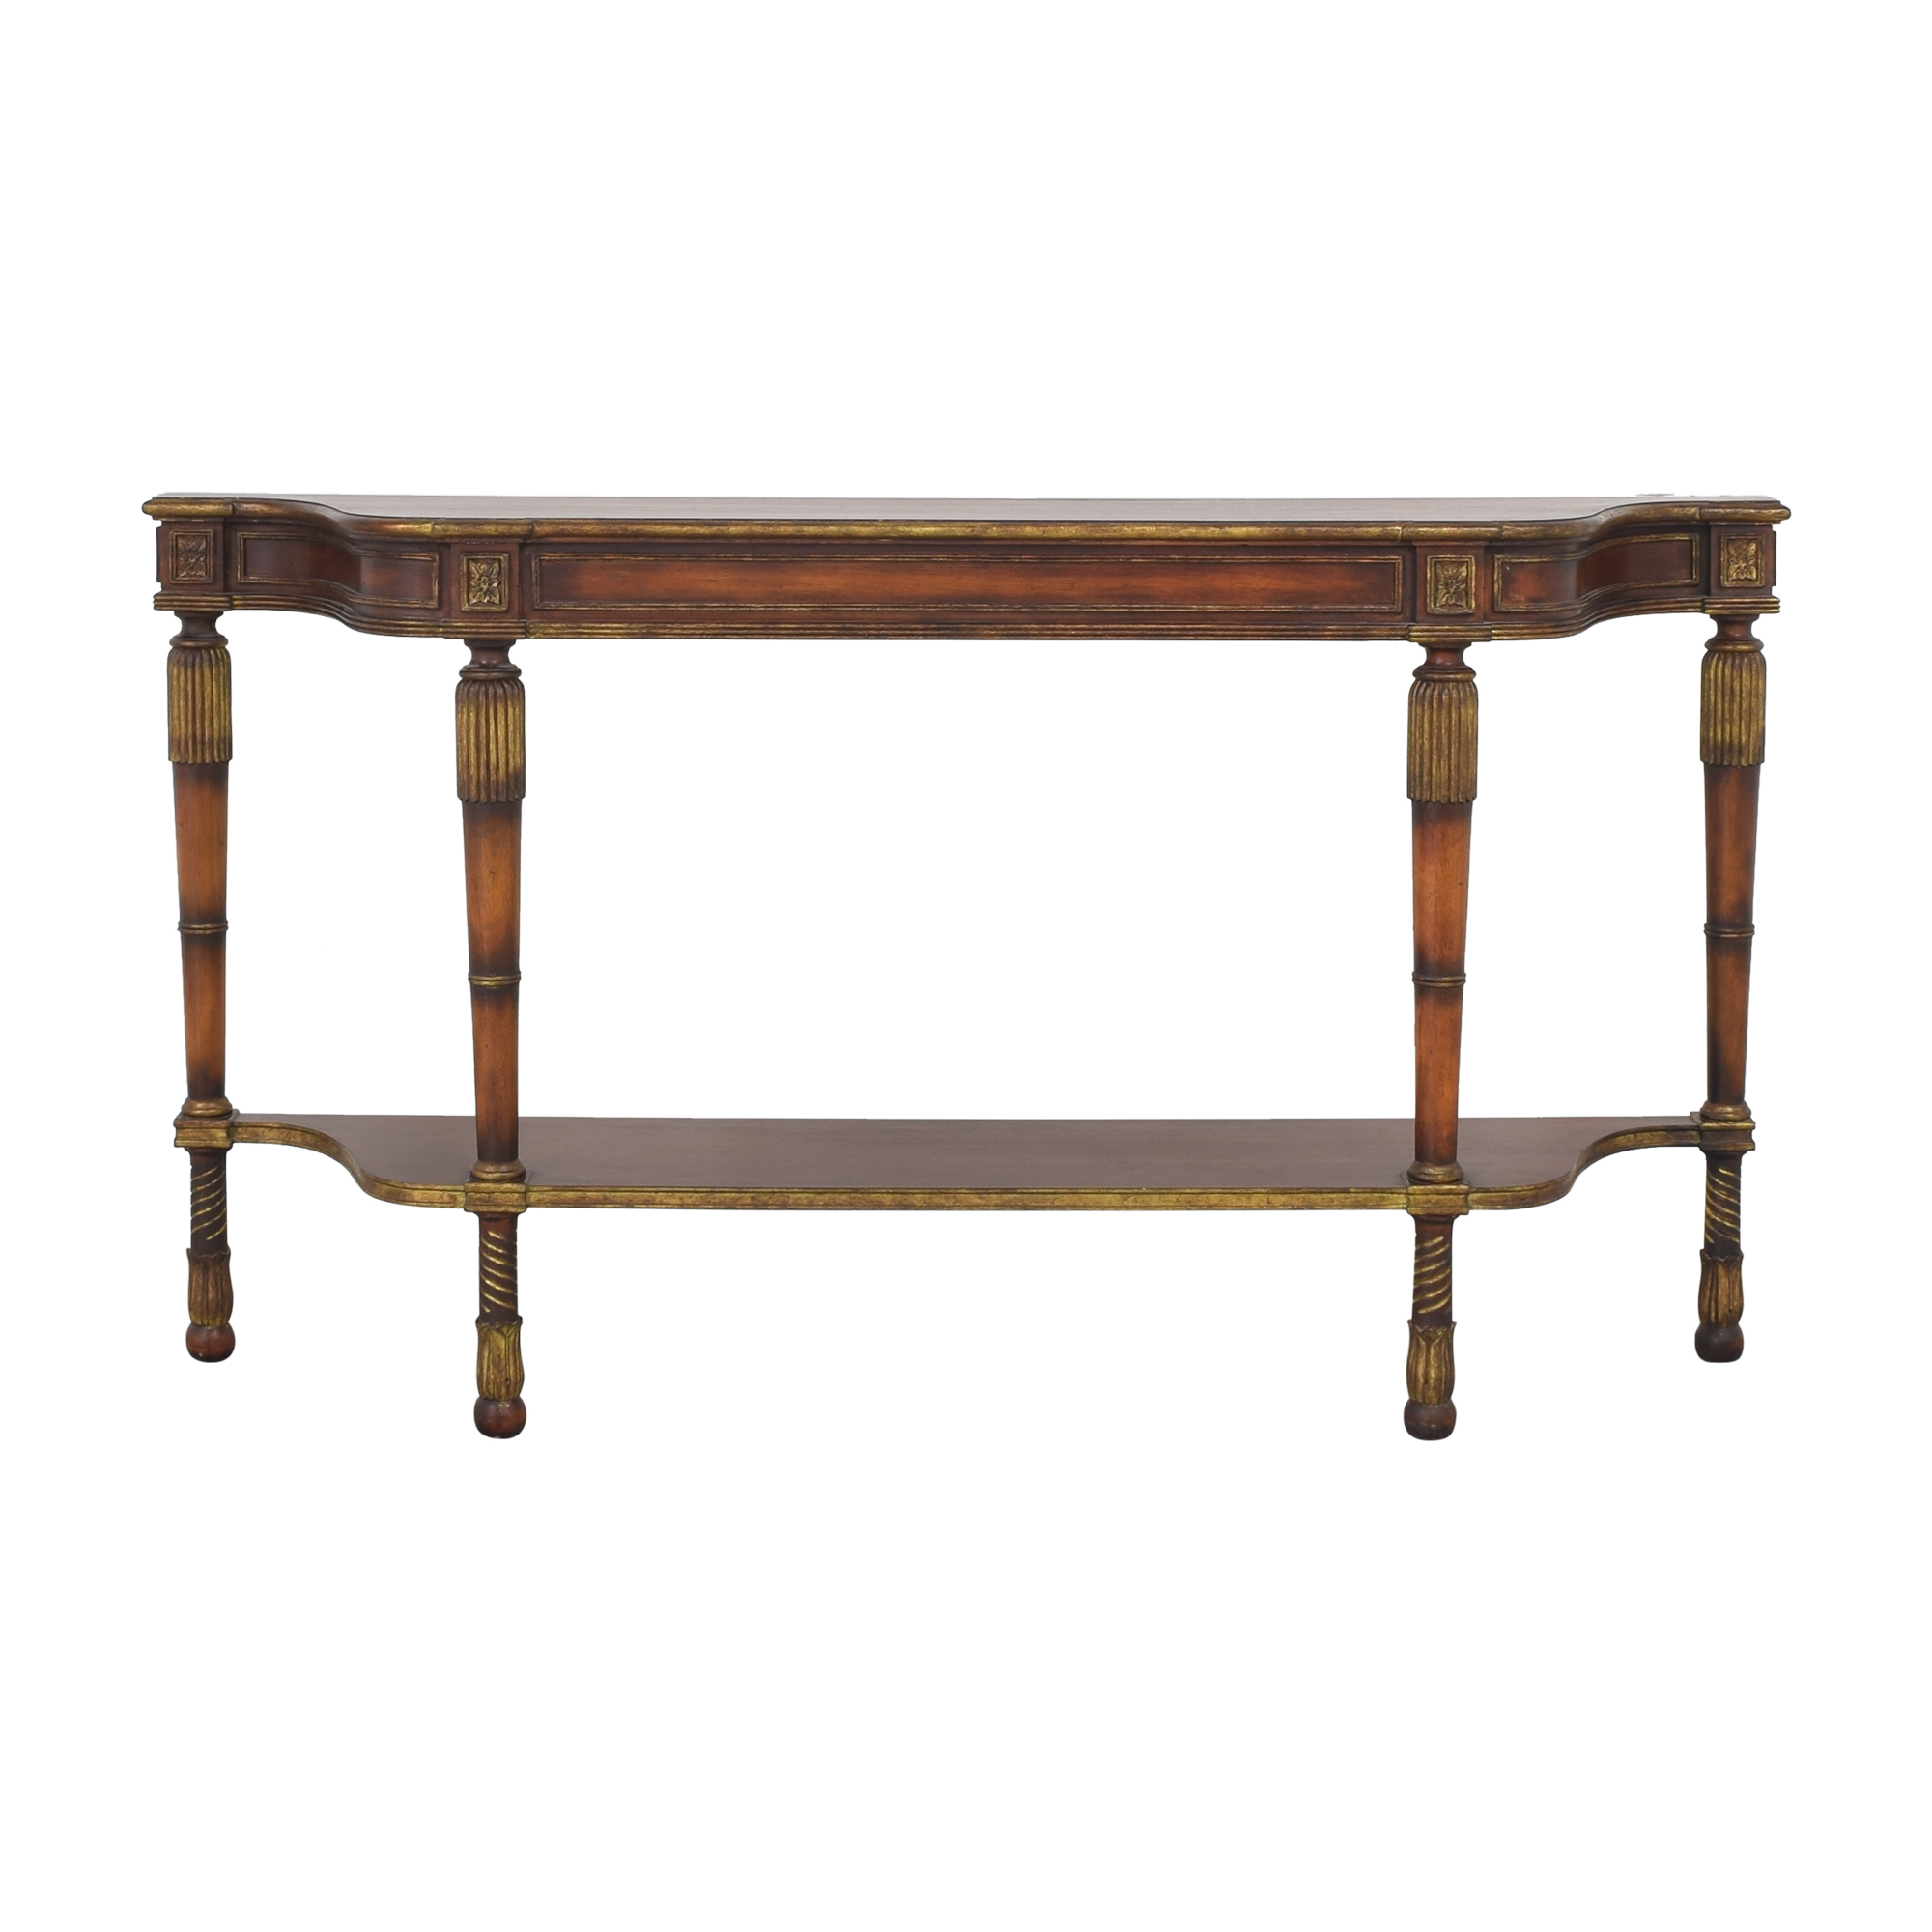 Pulaski Furniture Pulaski Furniture Sofa Table discount